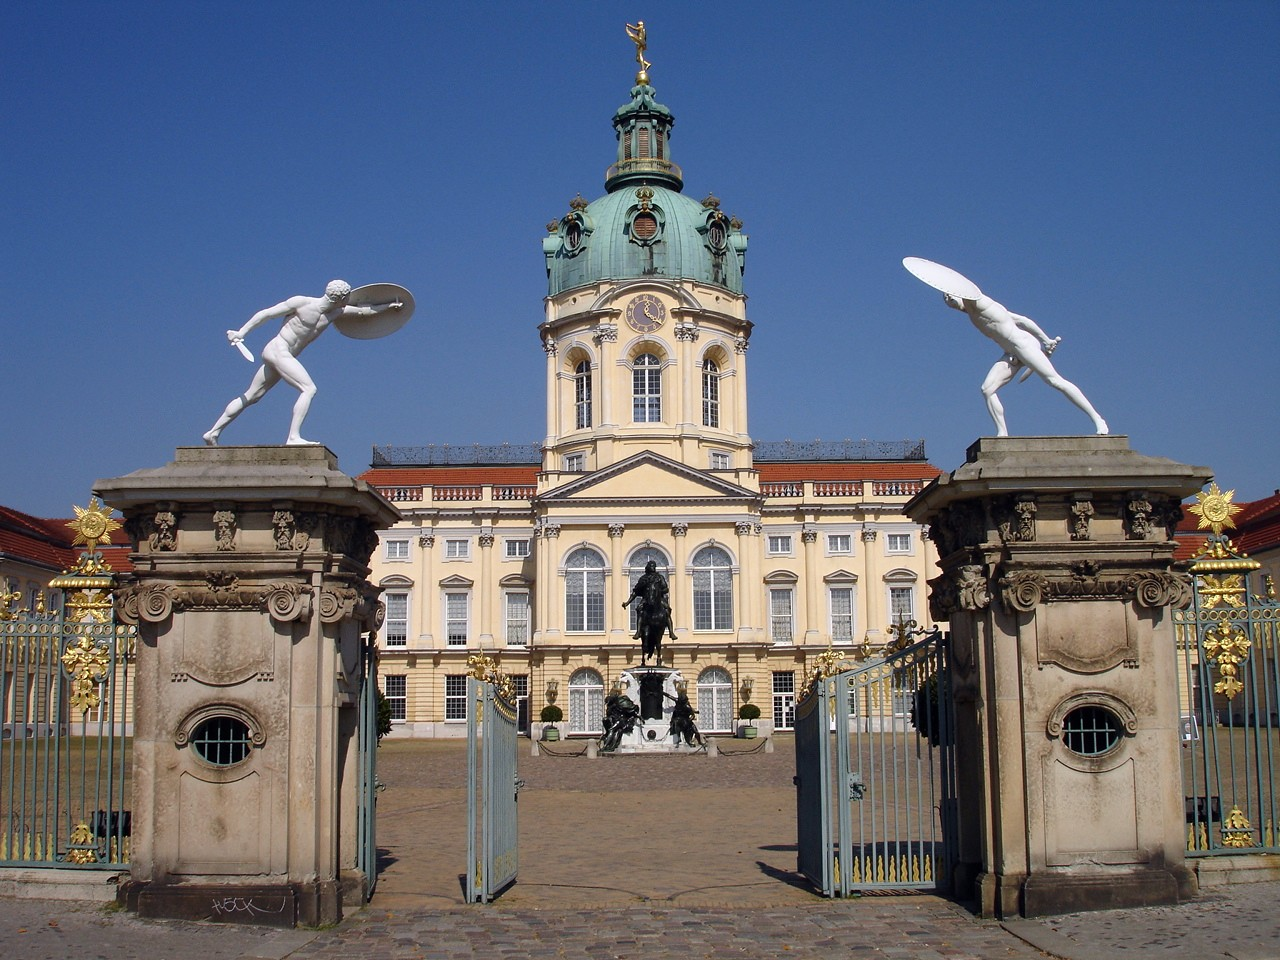 Chateau de Charlottenburg à Berlin - Photo d'Ingrid K.